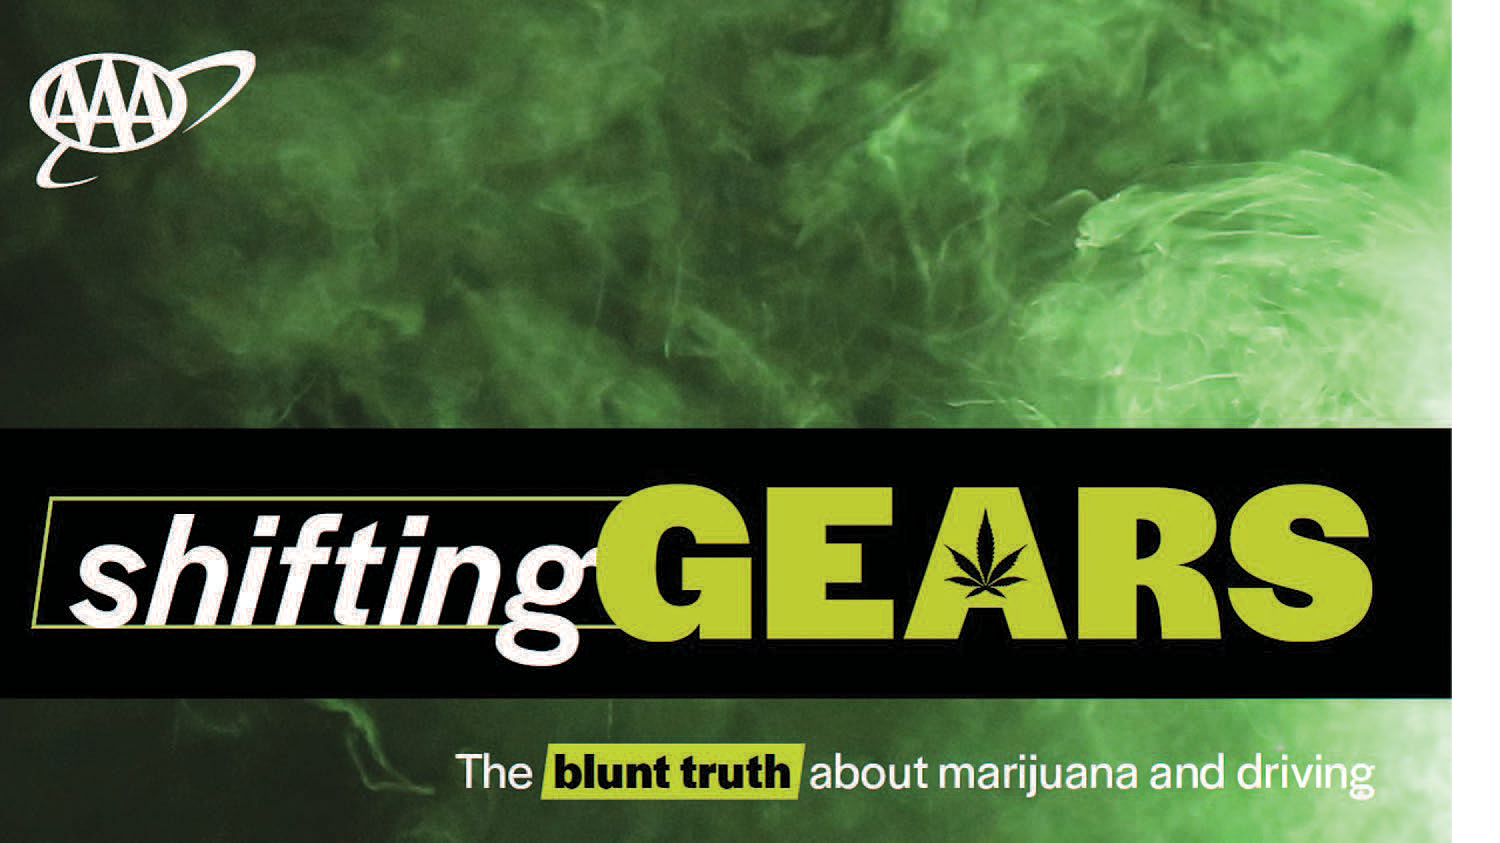 blunt truth about marijuana and driving